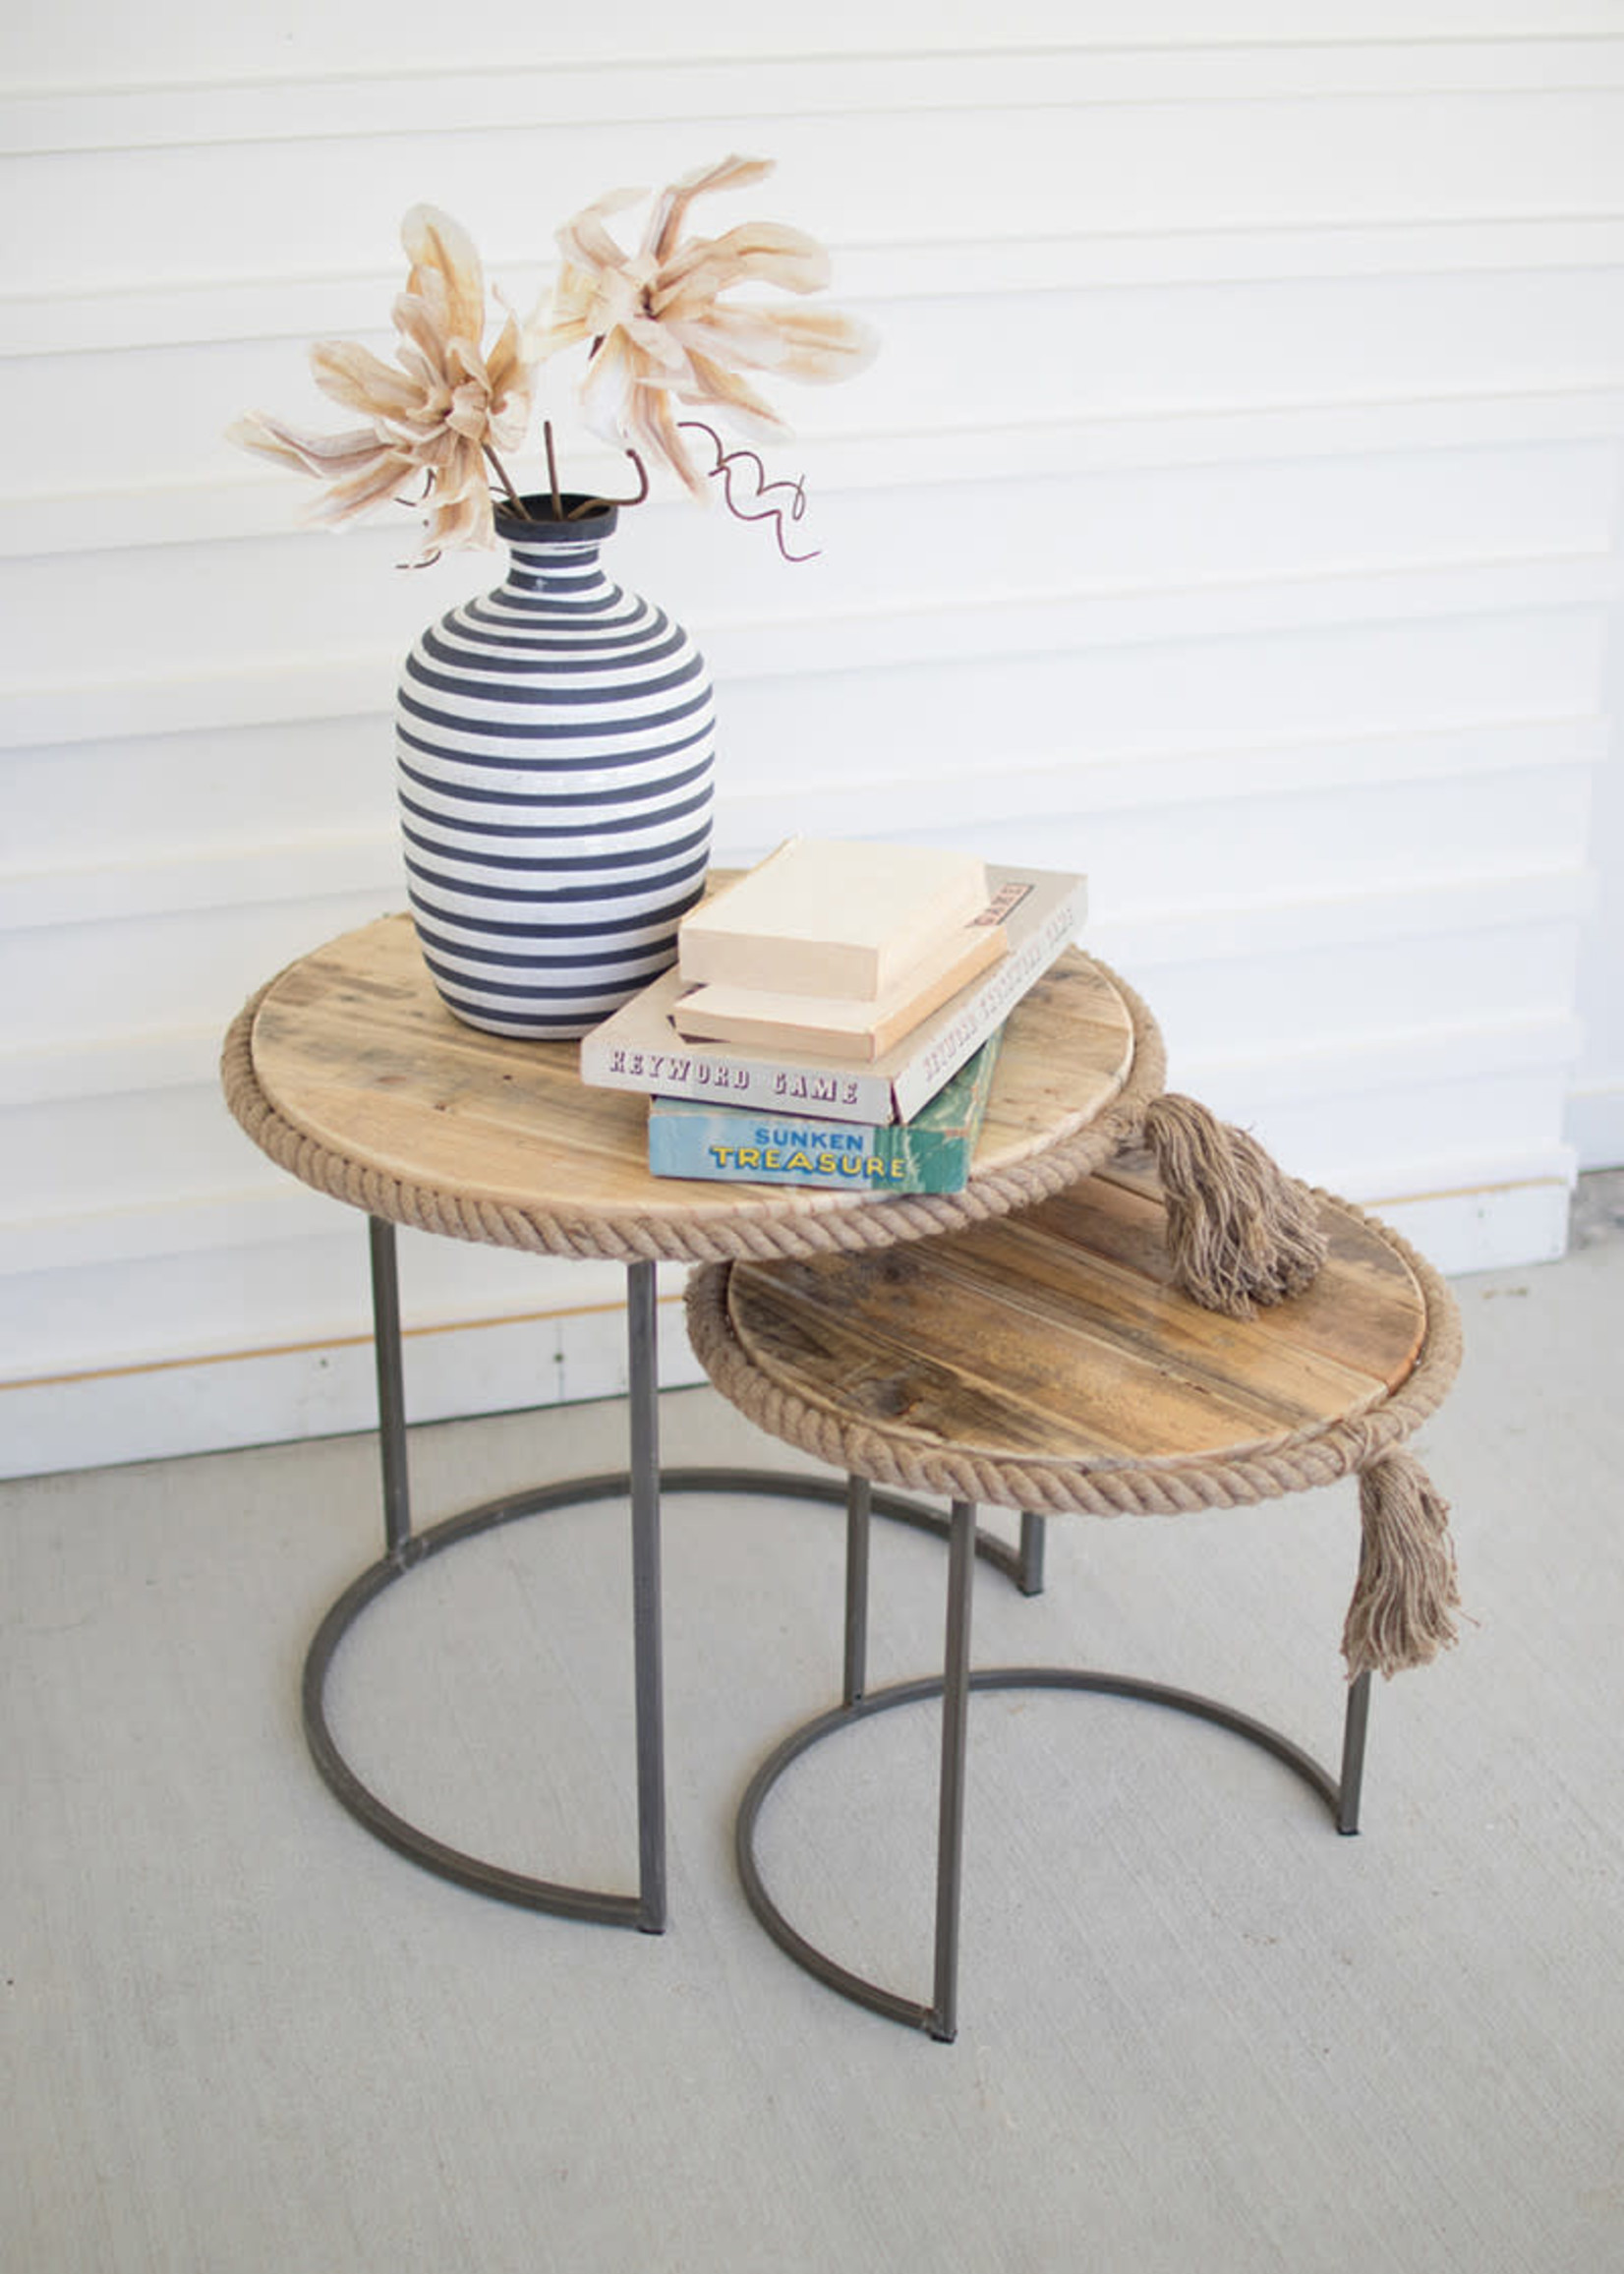 Round Nesting Tables with Recycled Wood with Rope Accent - Set of 2